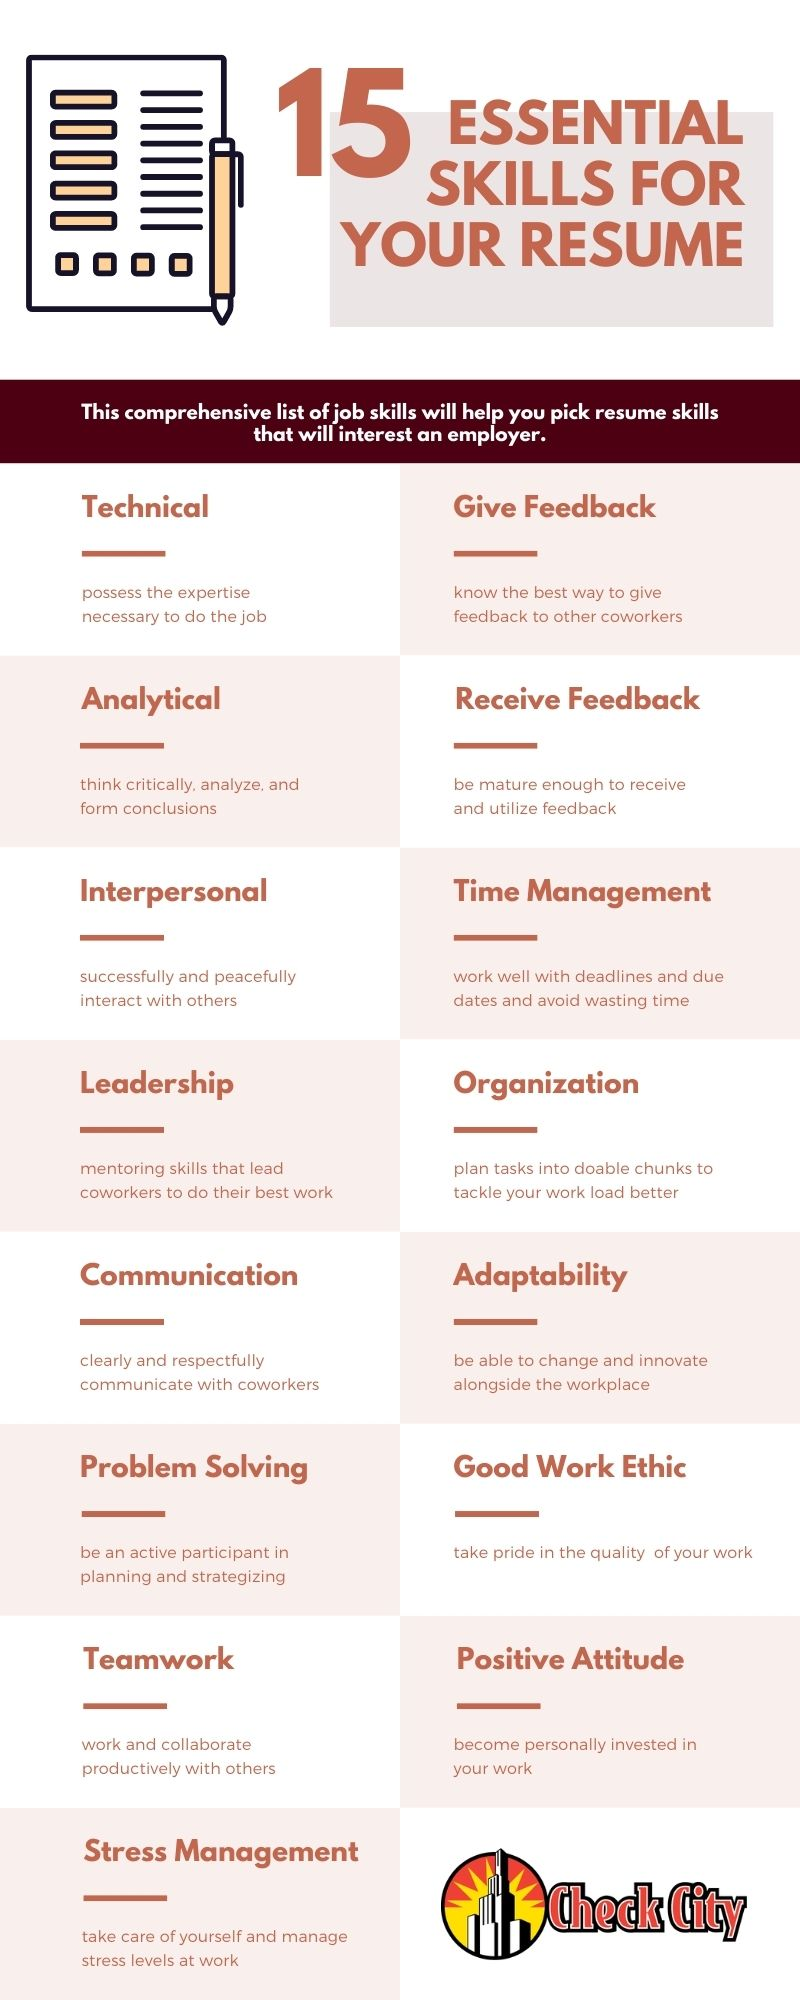 Skills for your resume infographic